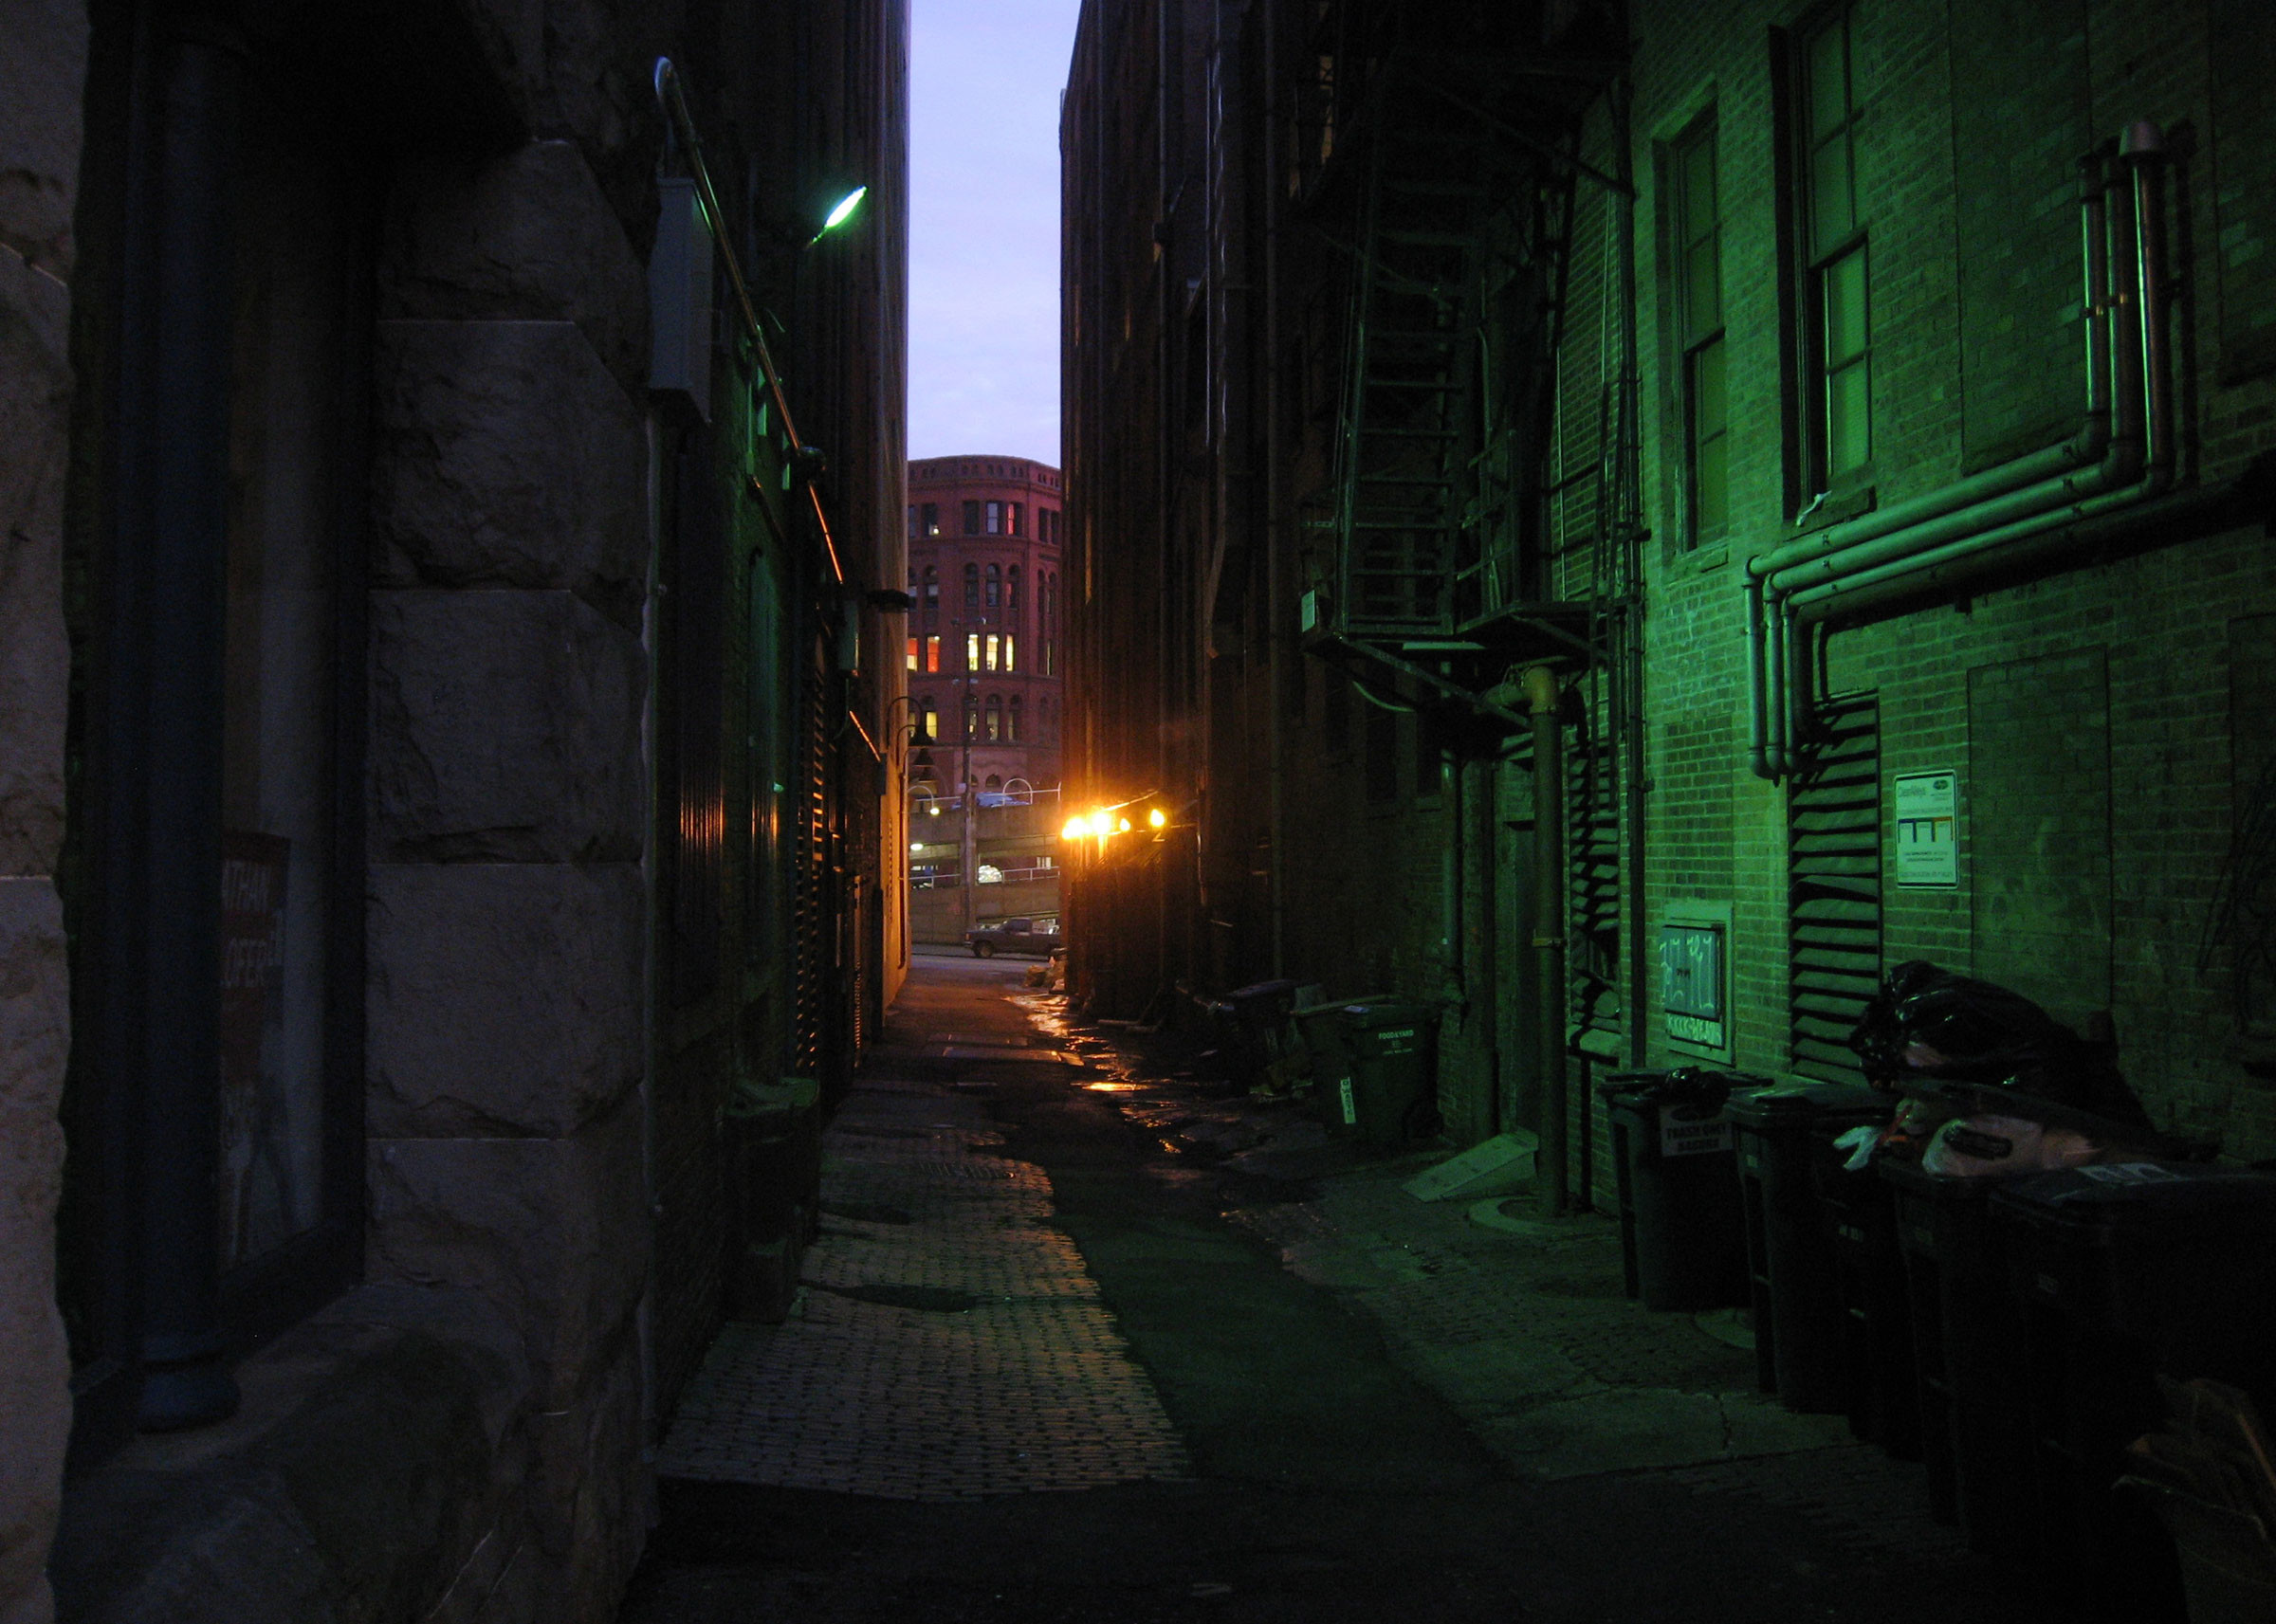 Cool alleyway in sweltering town